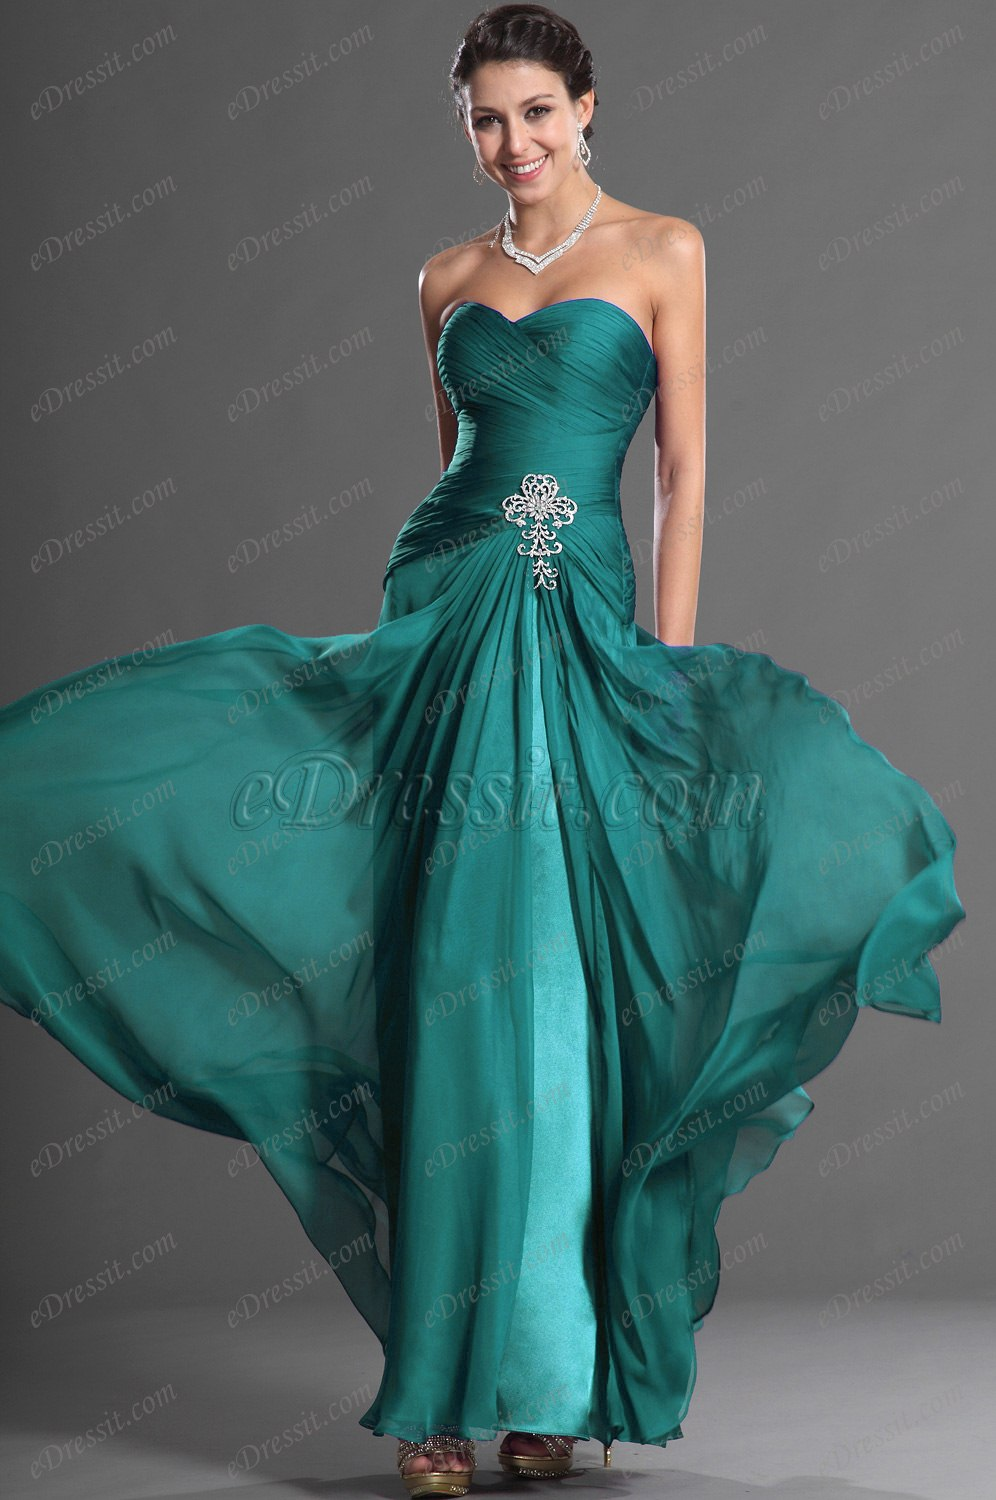 Clearance Sale ! Gorgeous Sweetheart Strapless Evening Dress (00129506B)